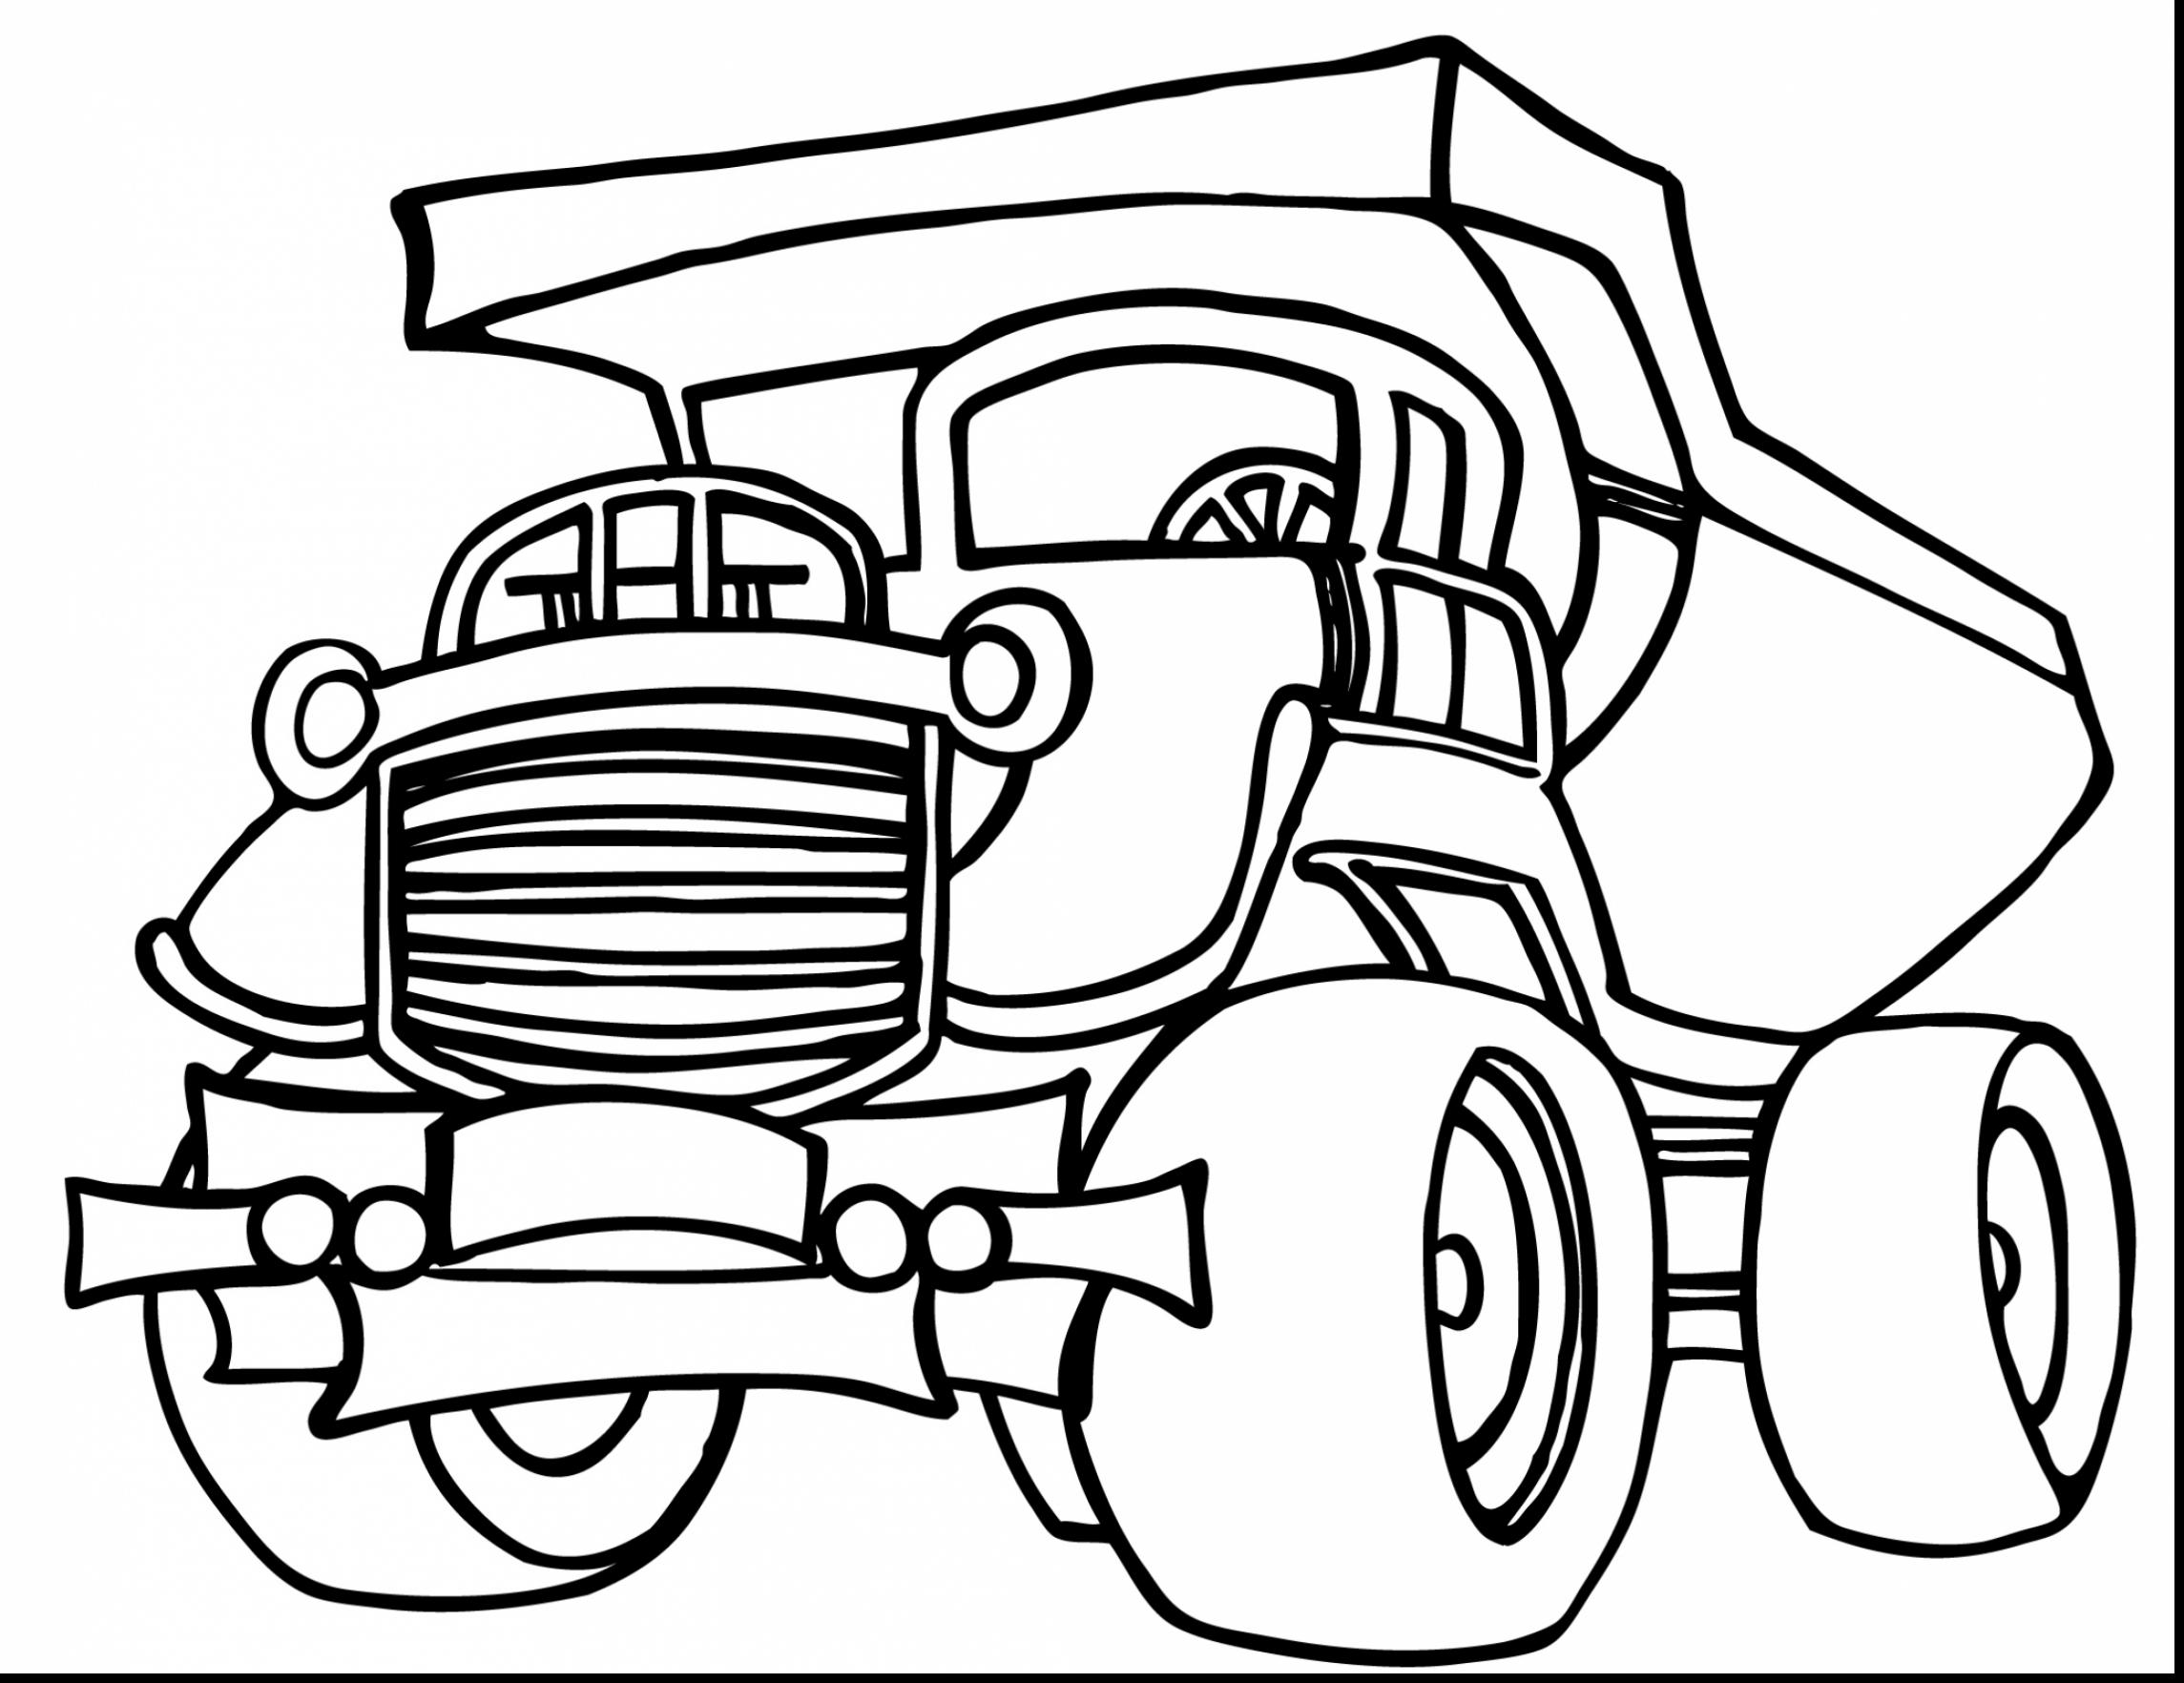 2289x1764 Superb Grave Digger Monster Truck Coloring Pages With Dump Truck